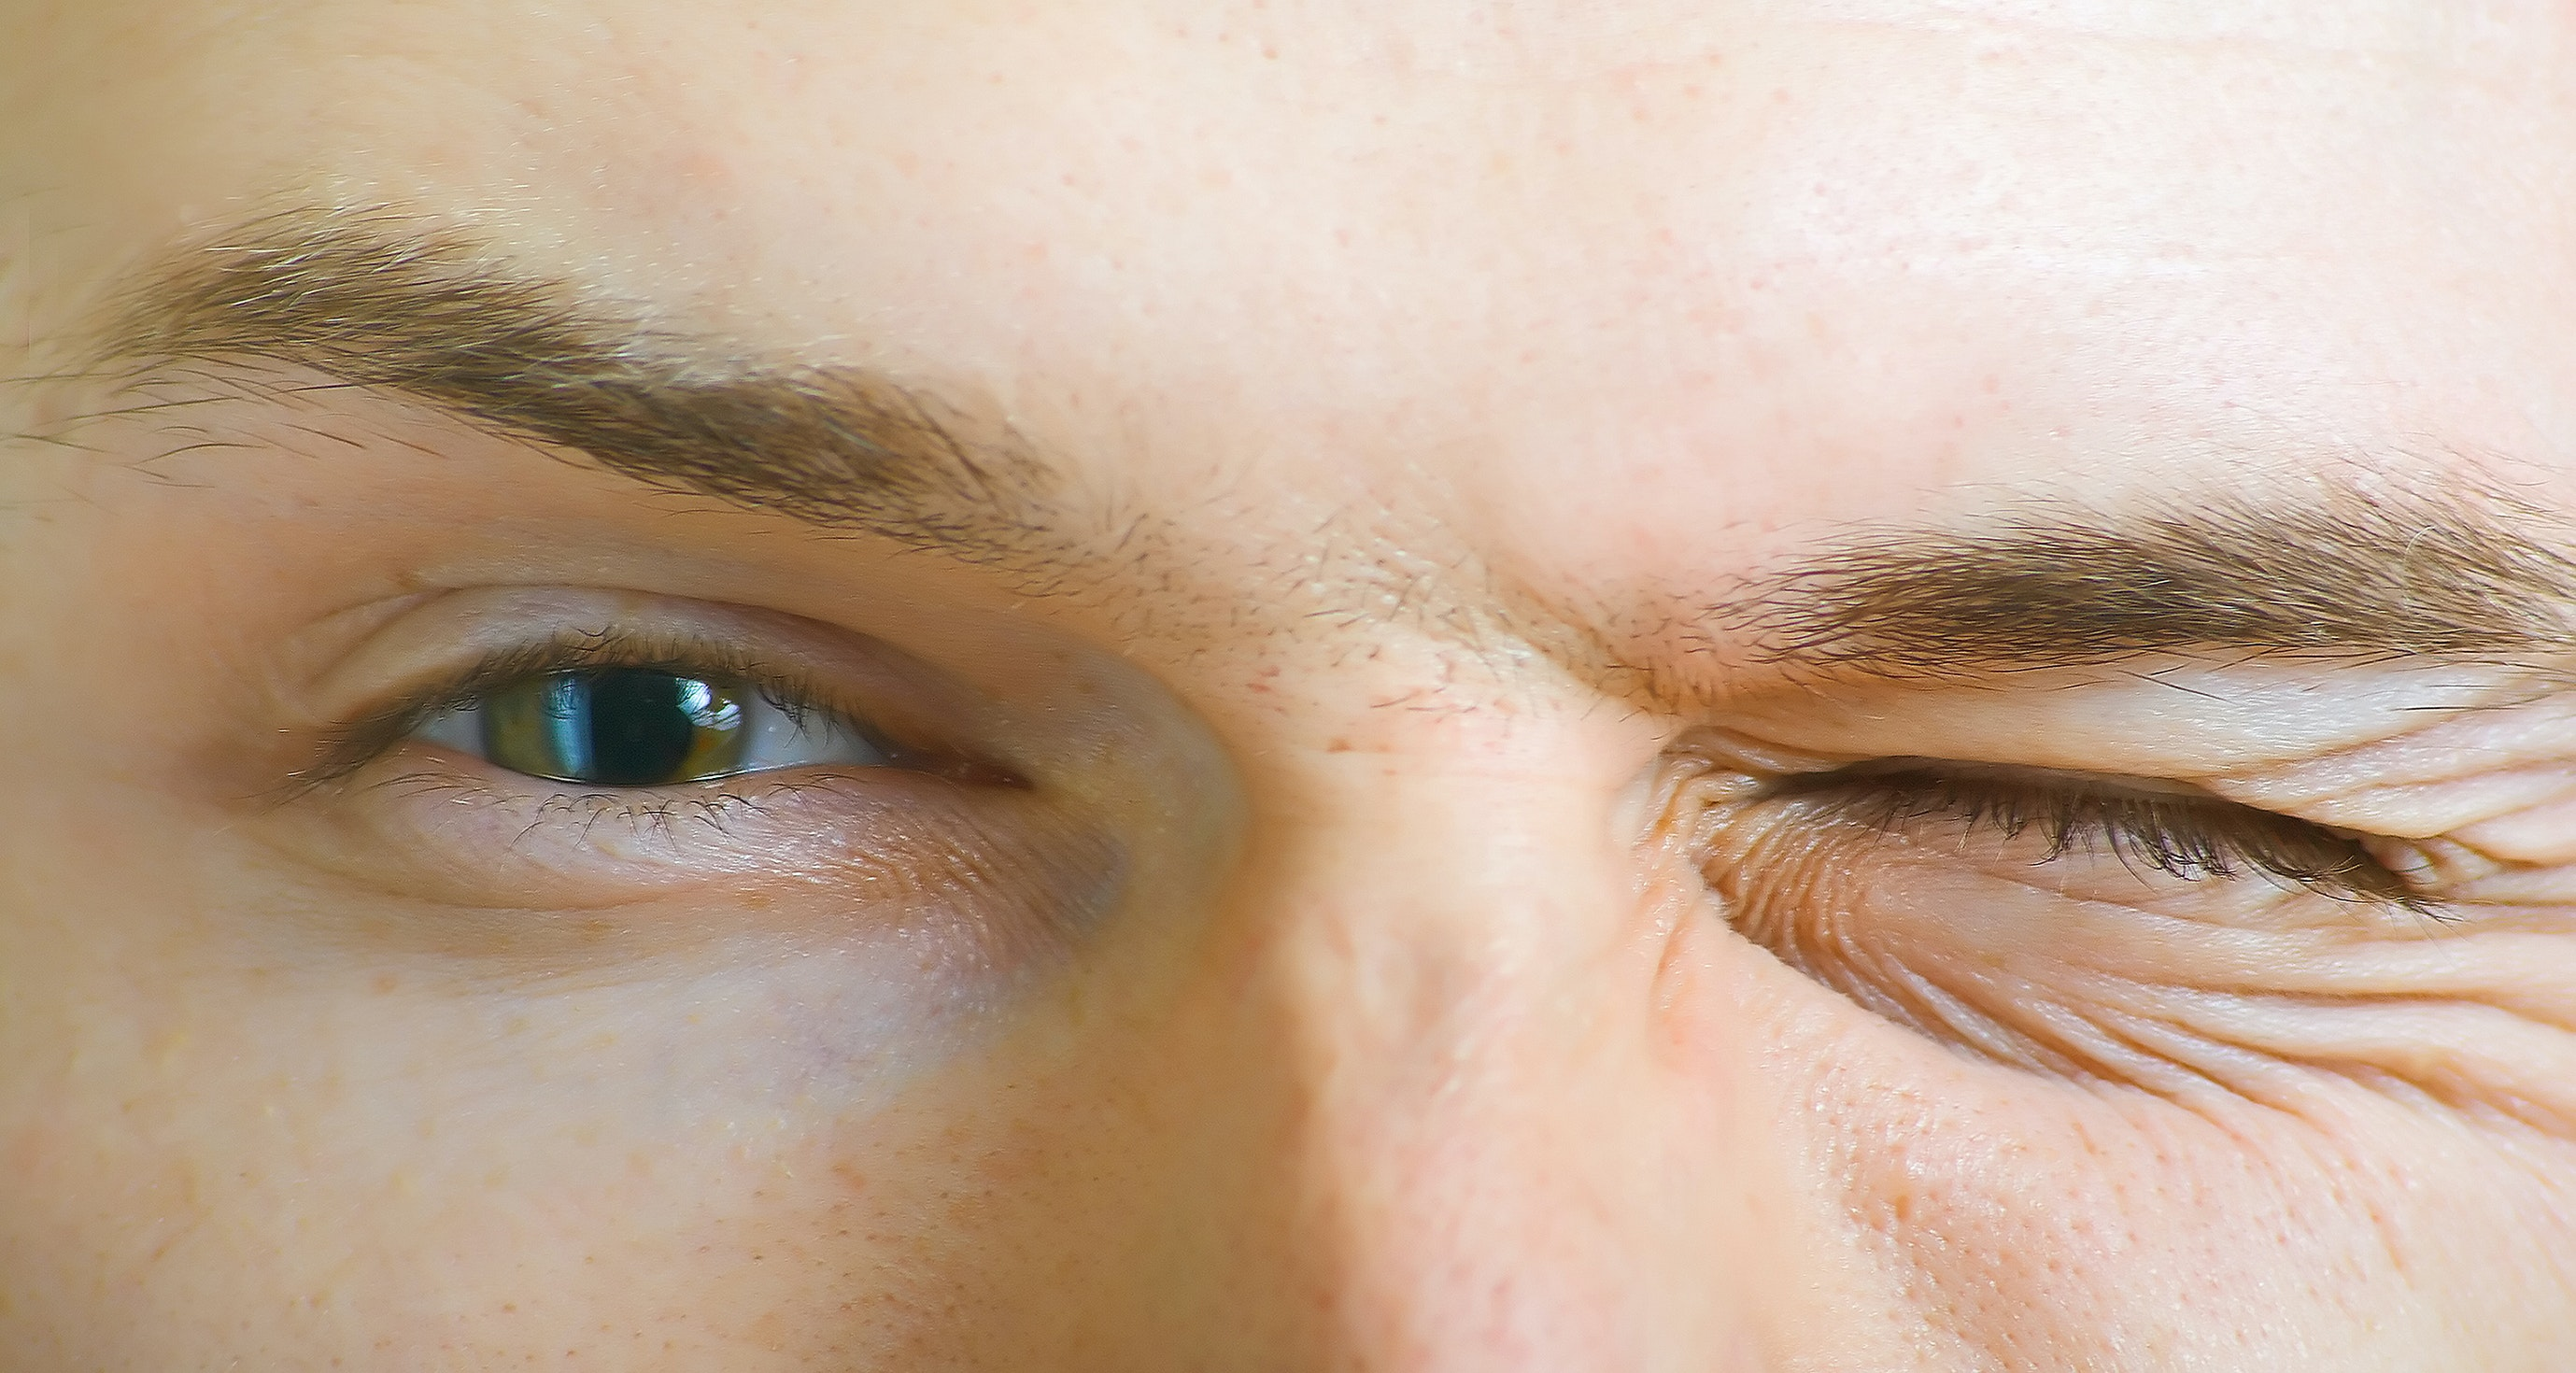 An image depicting a person suffering from twitching eye(s) symptoms